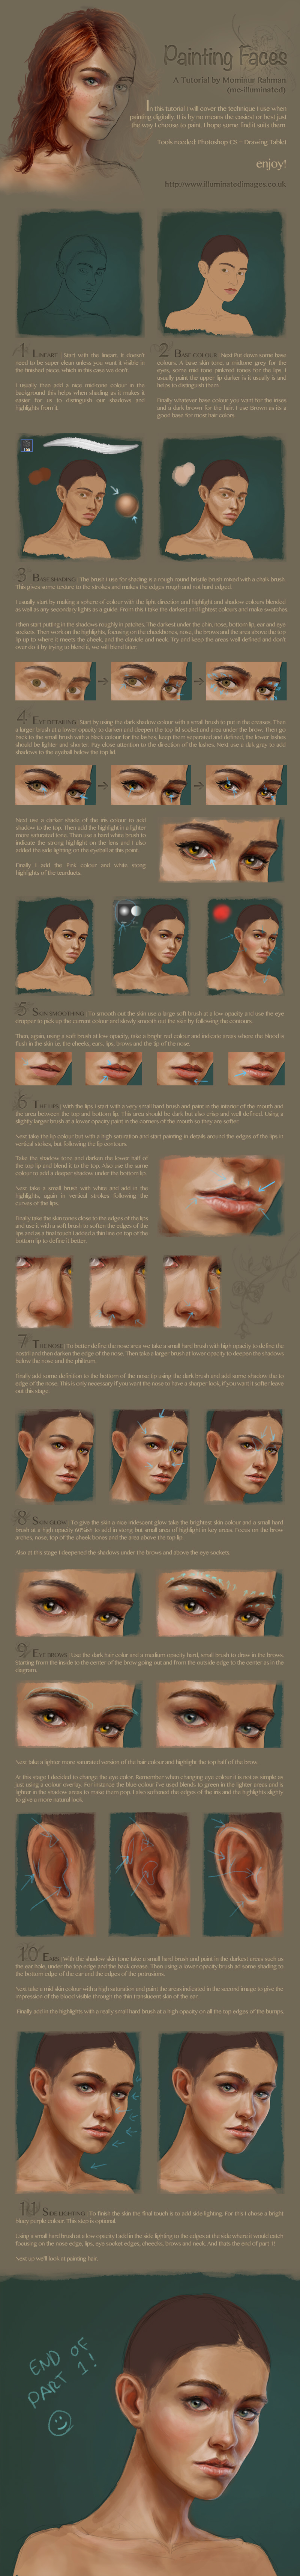 Digital face / portrait painting tutorial part 1 by me-illuminated